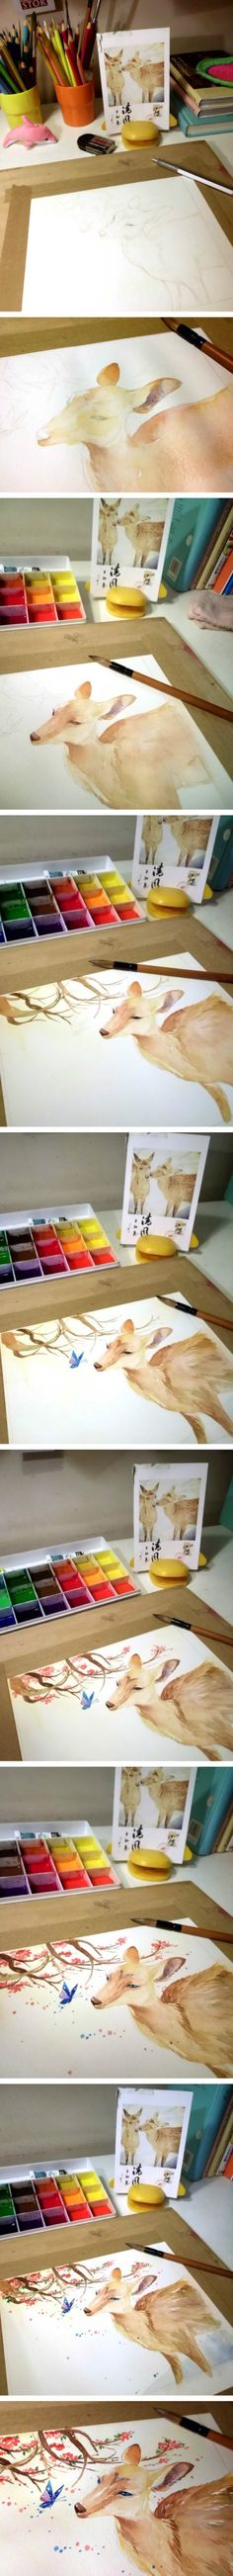 Step by step painting a deer from a photograph.